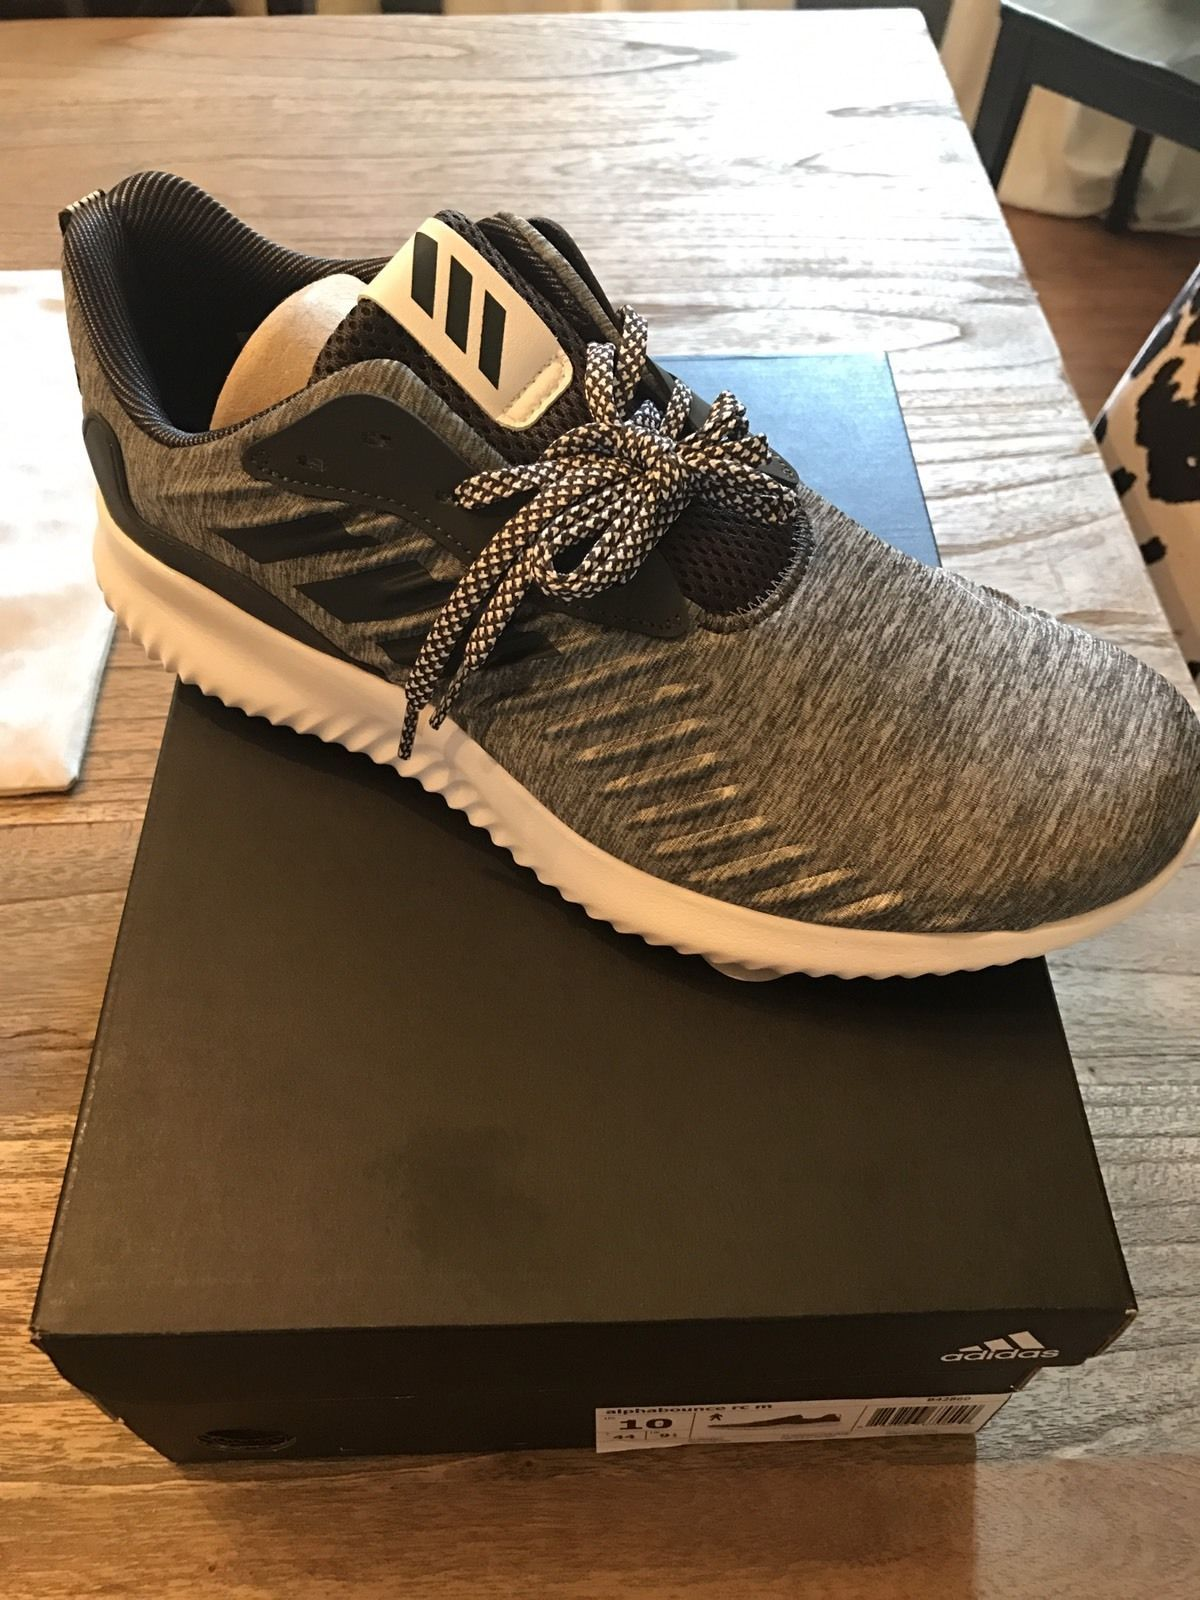 6dce2fc01e803 Adidas Mens Alphabounce RC Running Shoes Size 10 us B42860